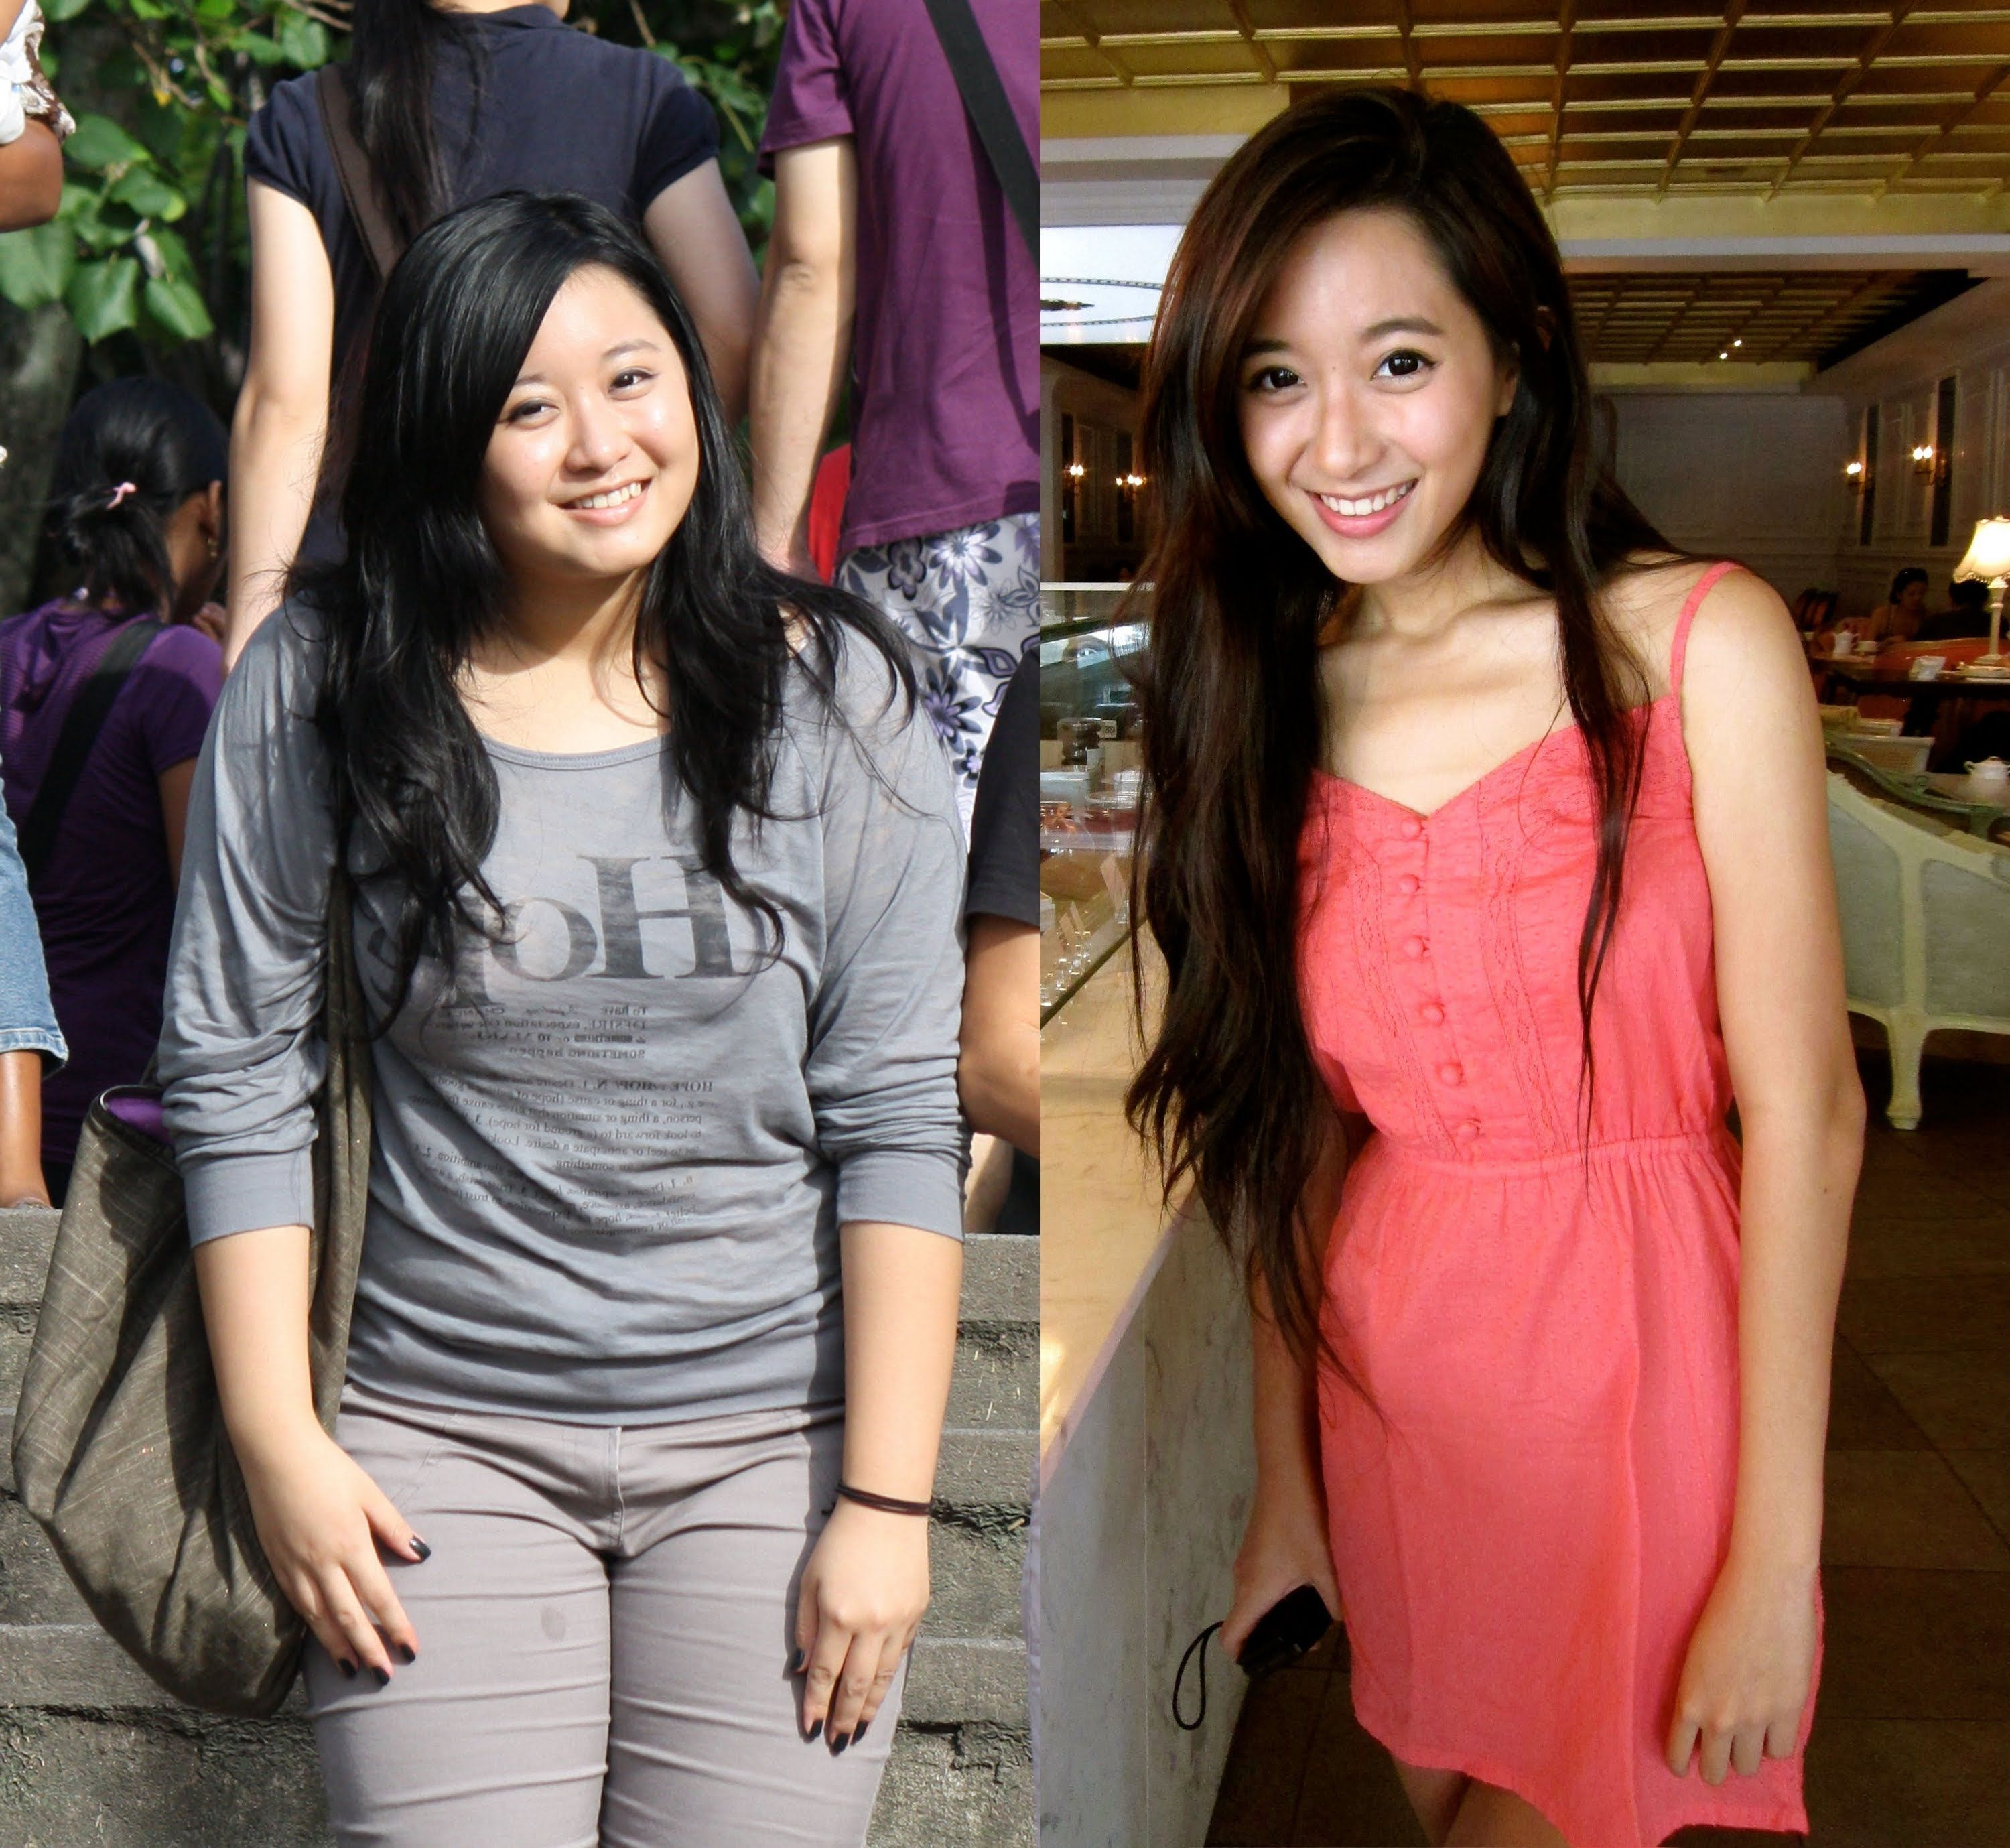 Easy tricks to help you lose weight fast weight loss pinterest p lose weight realistically lose 30 pounds in 3 months best cholesterol medication ratings realistically lose 30 pounds in 3 months biosymmetry weight ccuart Gallery